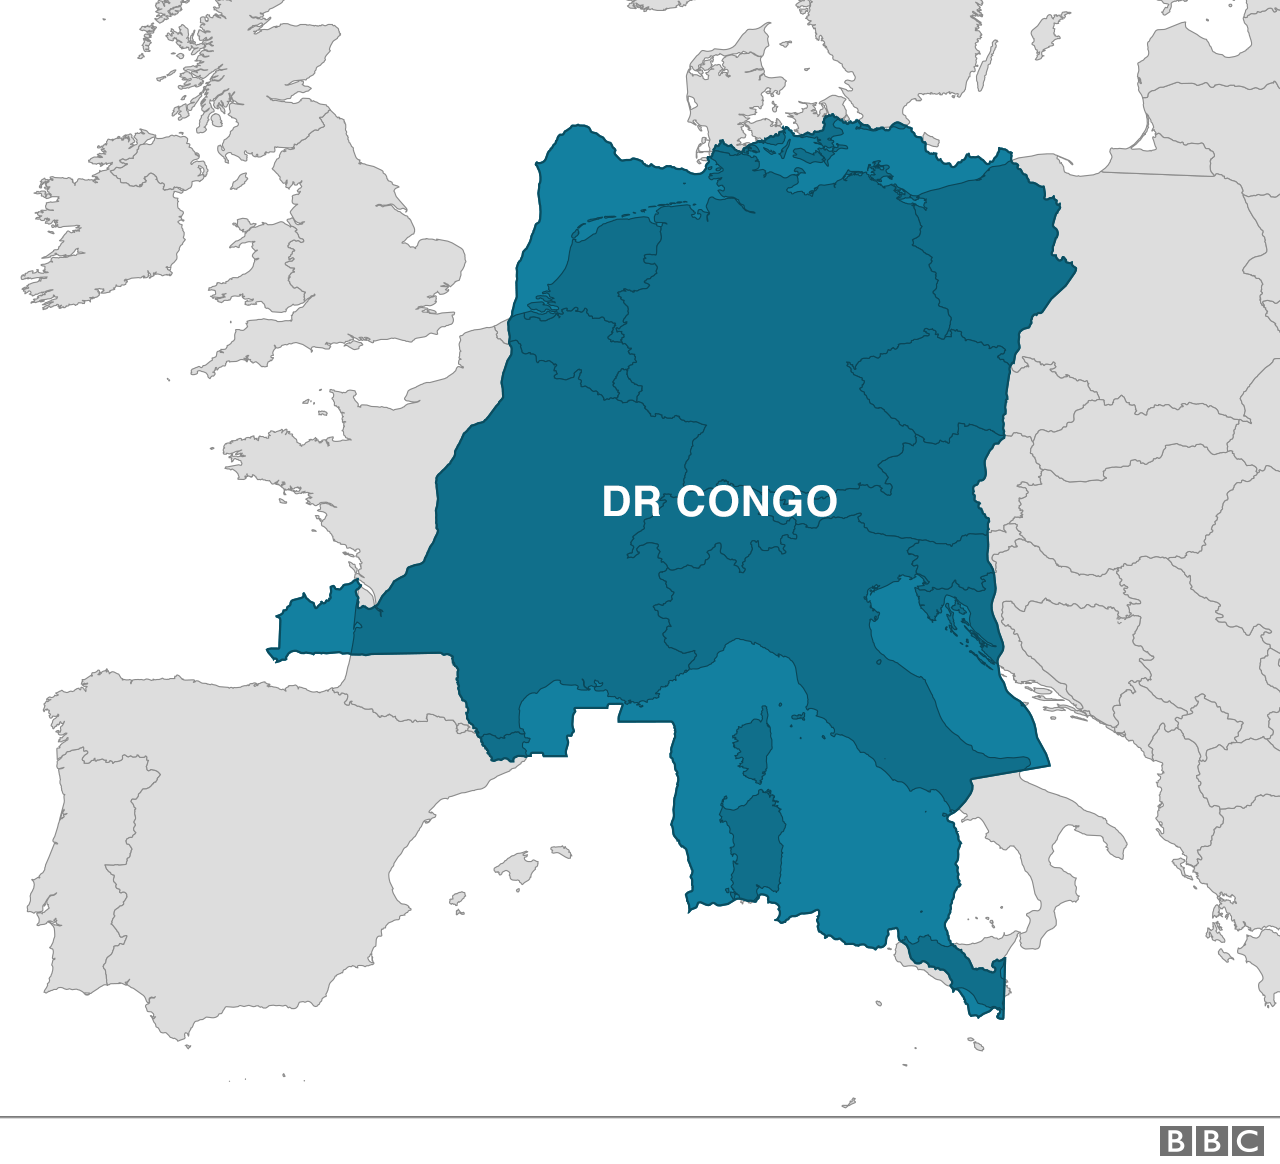 Map of DR Congo over Western Europe